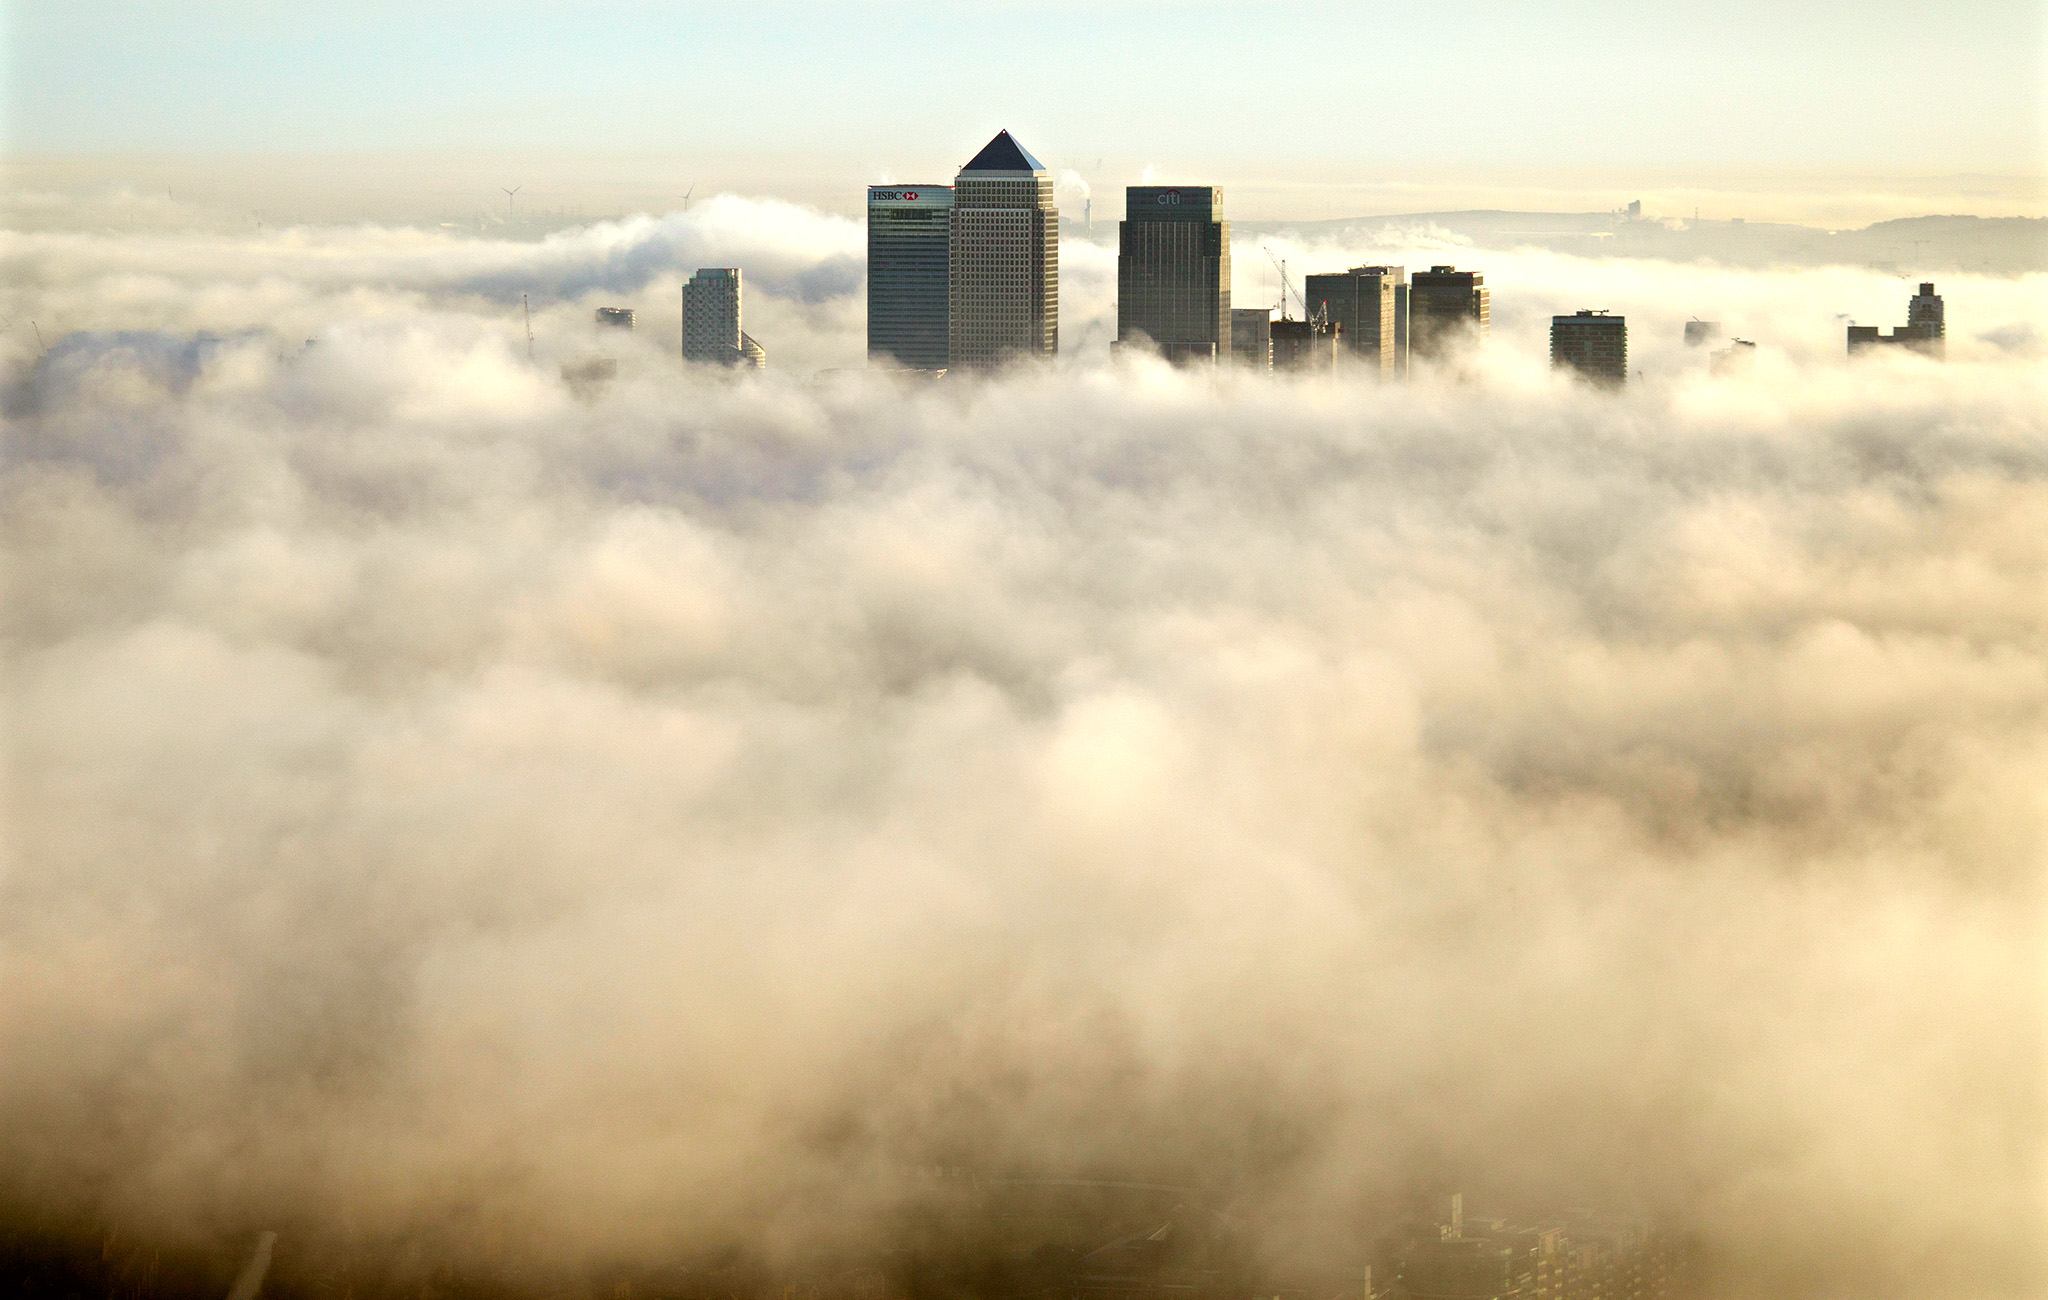 Canary Wharf and the fog around London as seen from the Shard